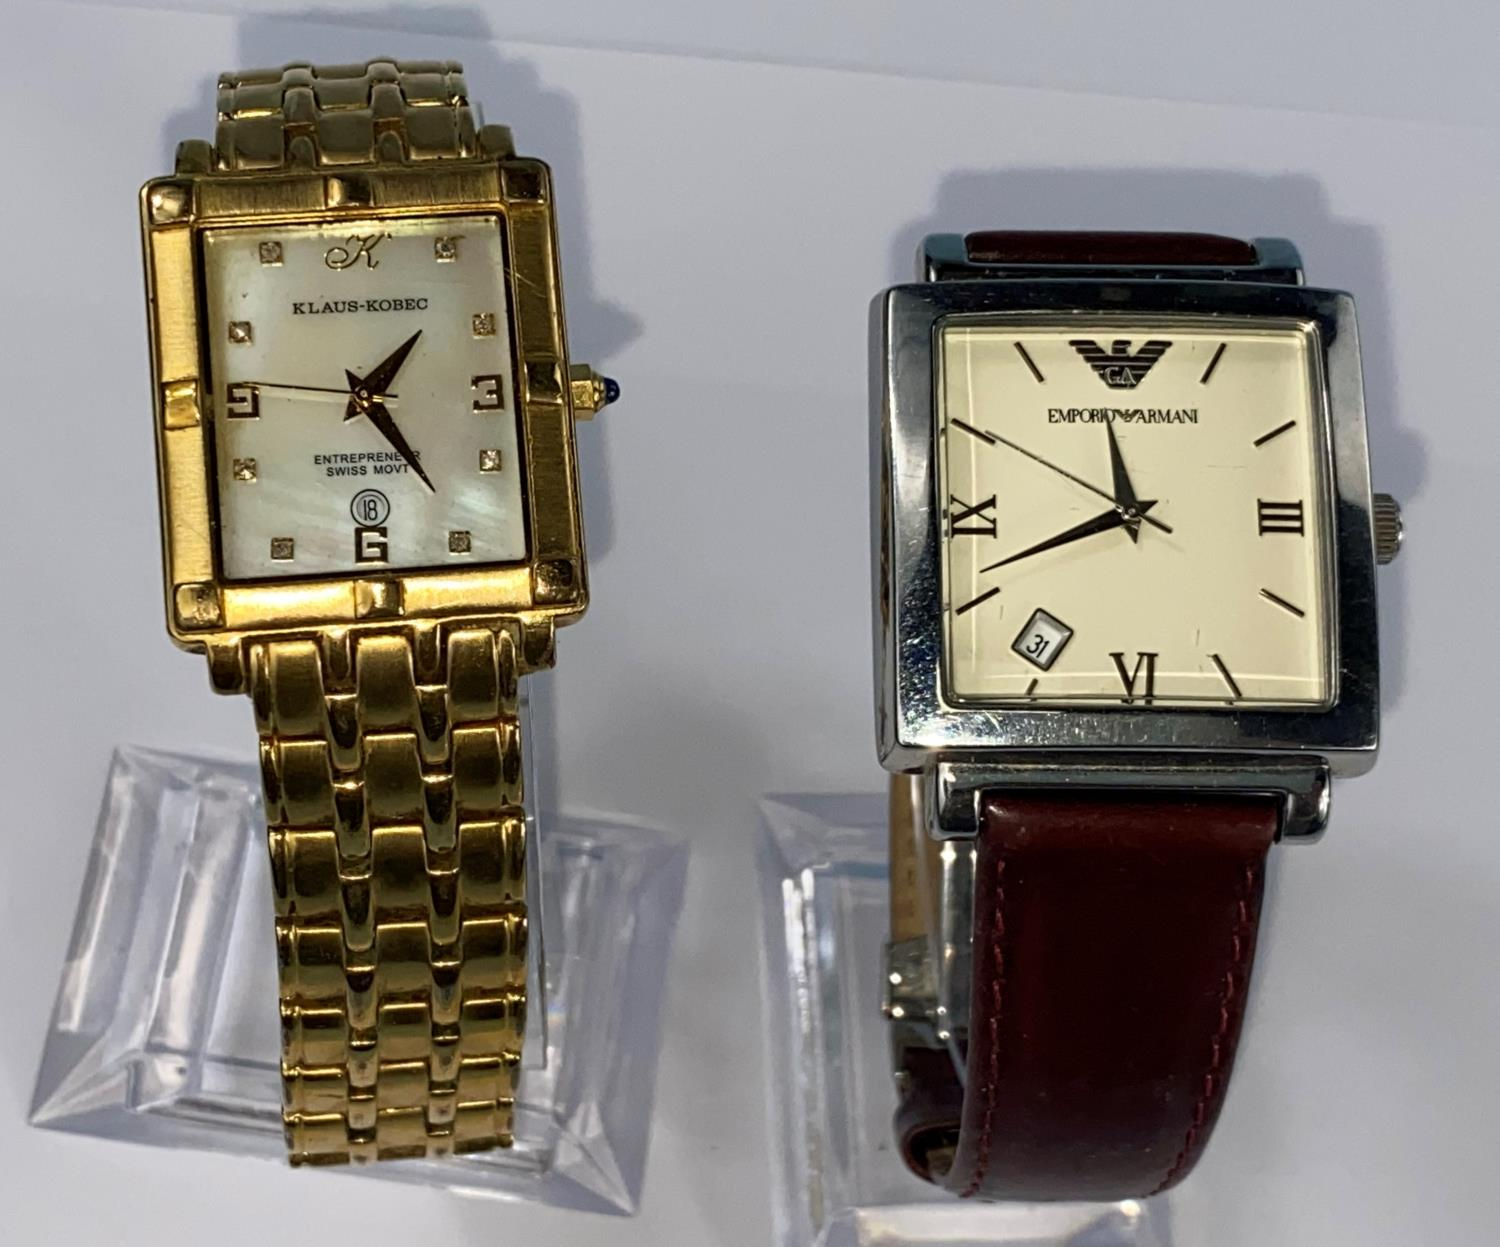 A Gent's Emporio Armani wristwatch and a Klaus Kobec wristwatch with mother of pearl dial and gilt - Image 2 of 2